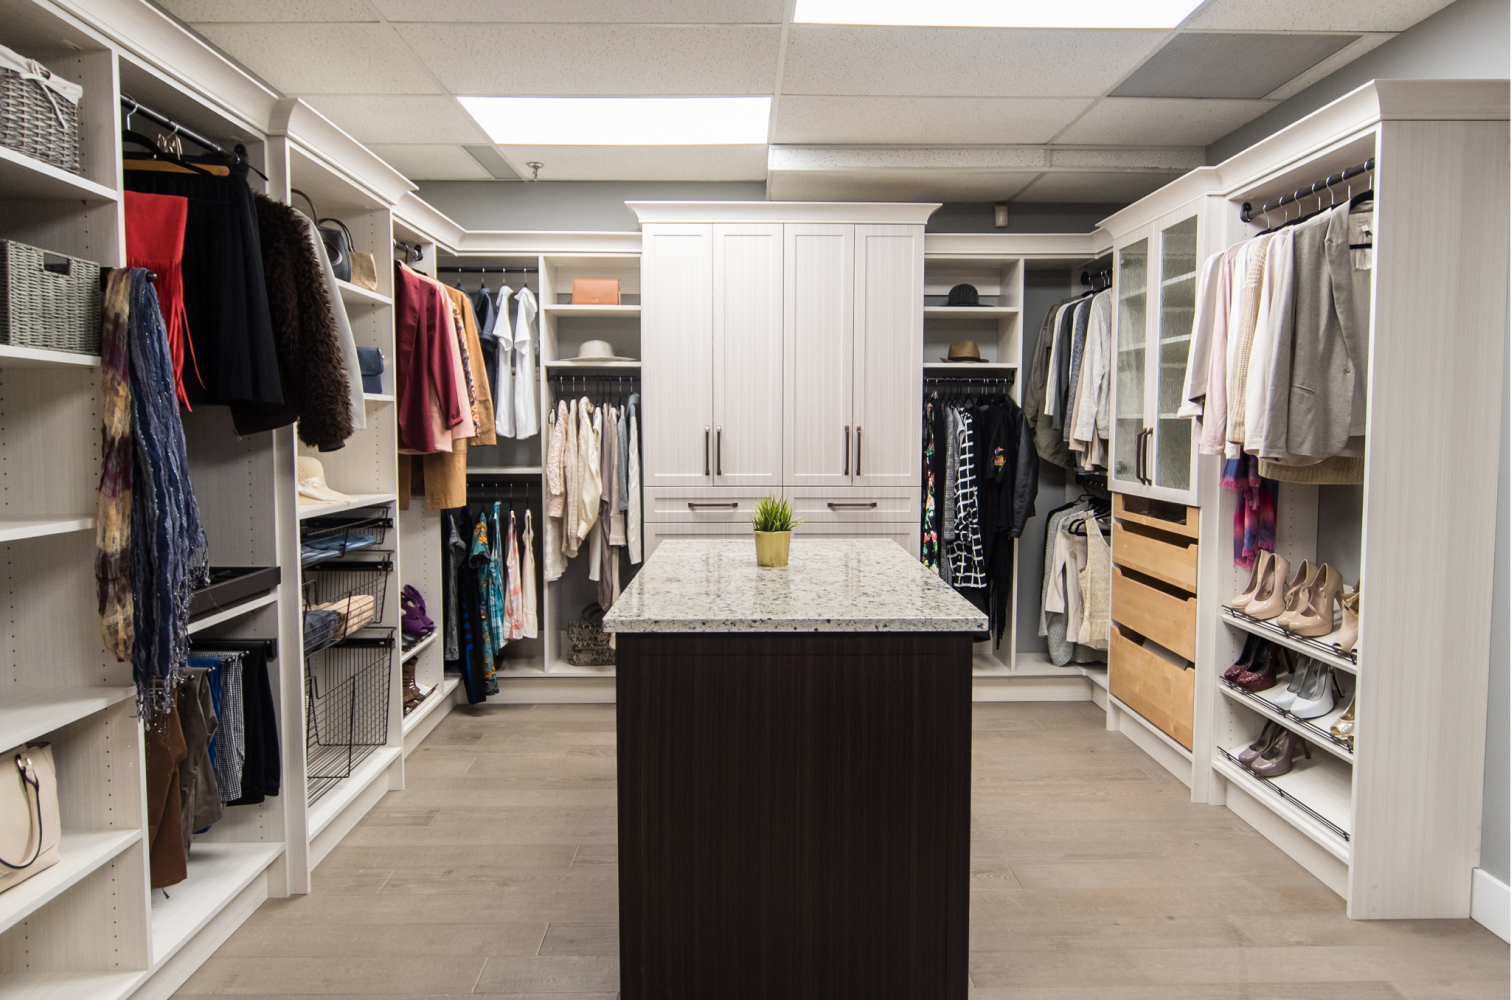 Luxury storage system, walk-in closet with drawers, cupboards, organizers, shelving and an island counter